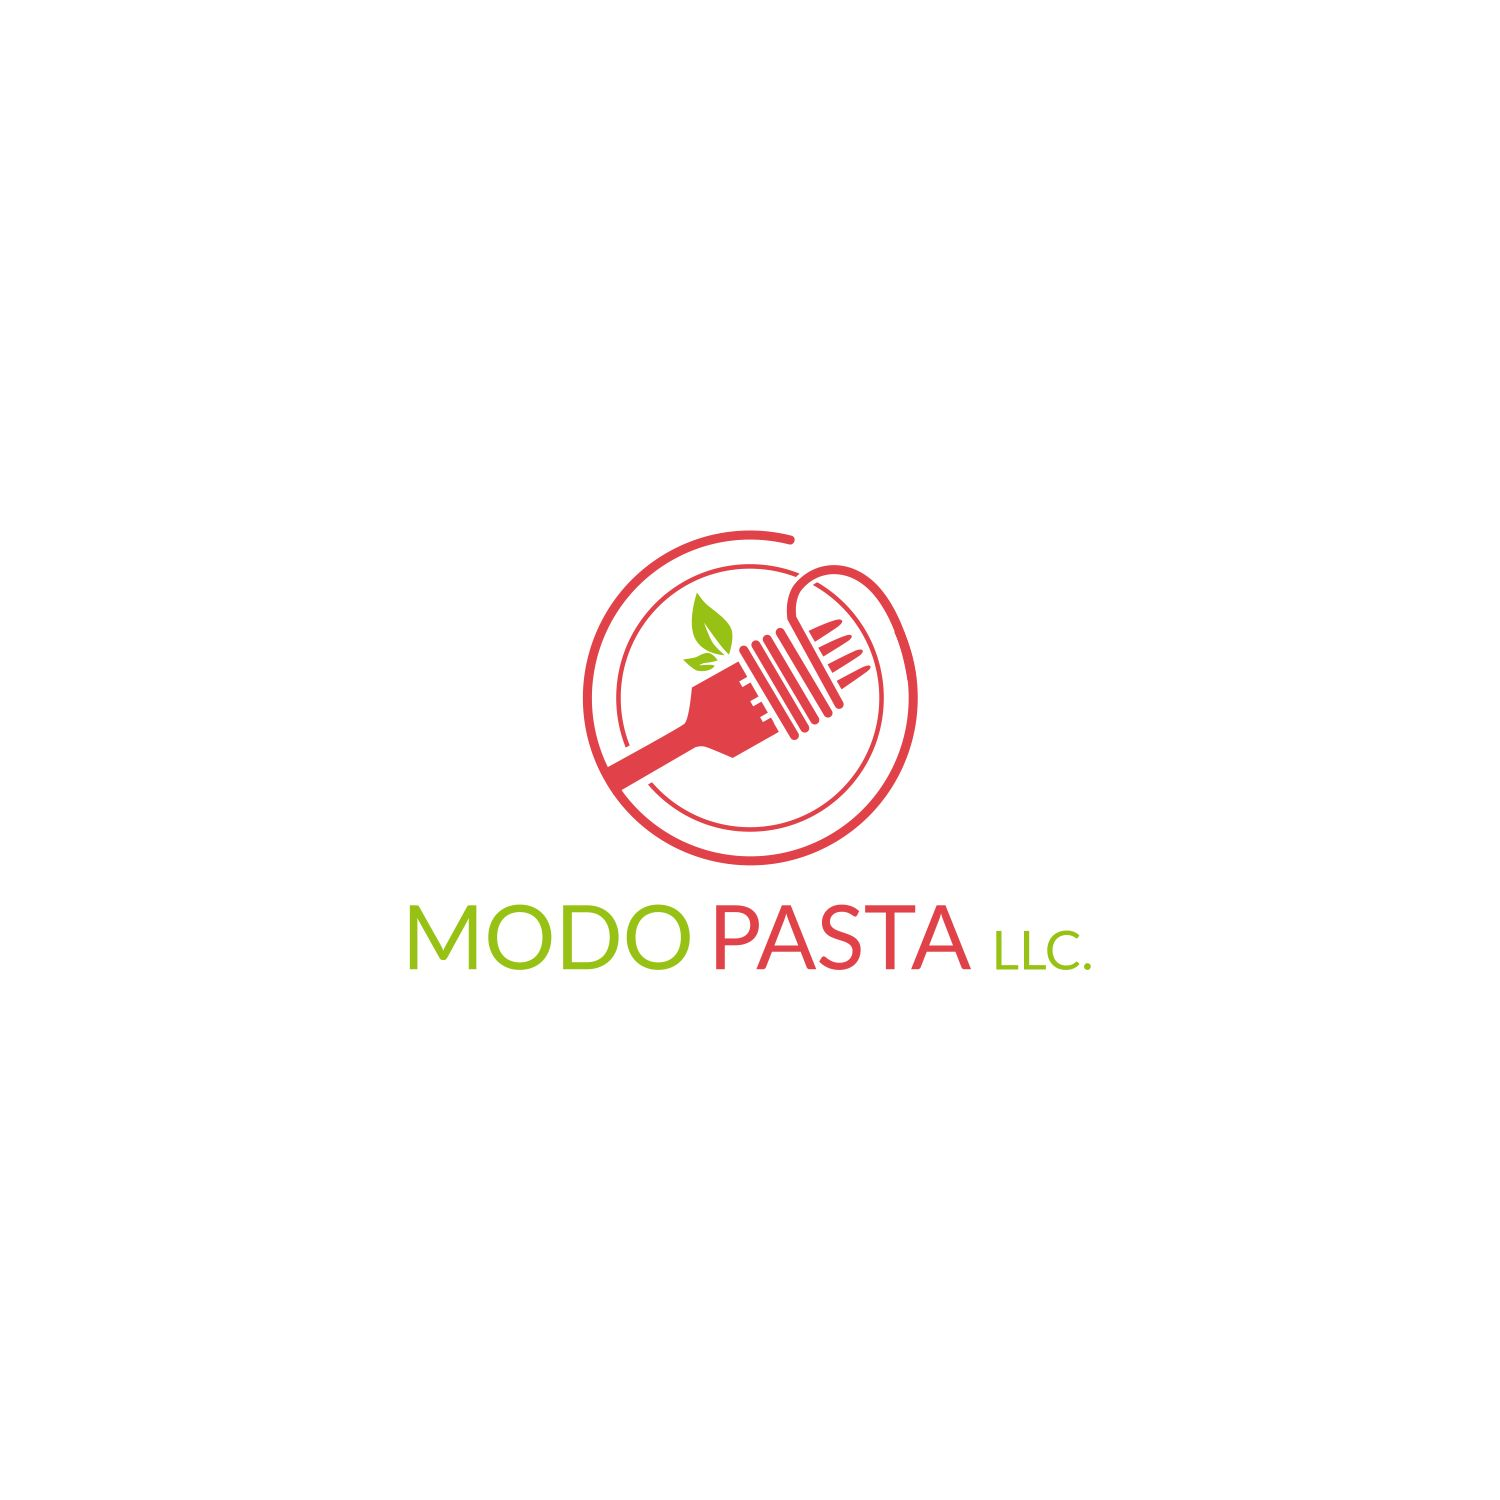 Bold Modern Fast Food Restaurant Logo Design For Modo Pasta Llc By Preatyboymaulana Design 18966911